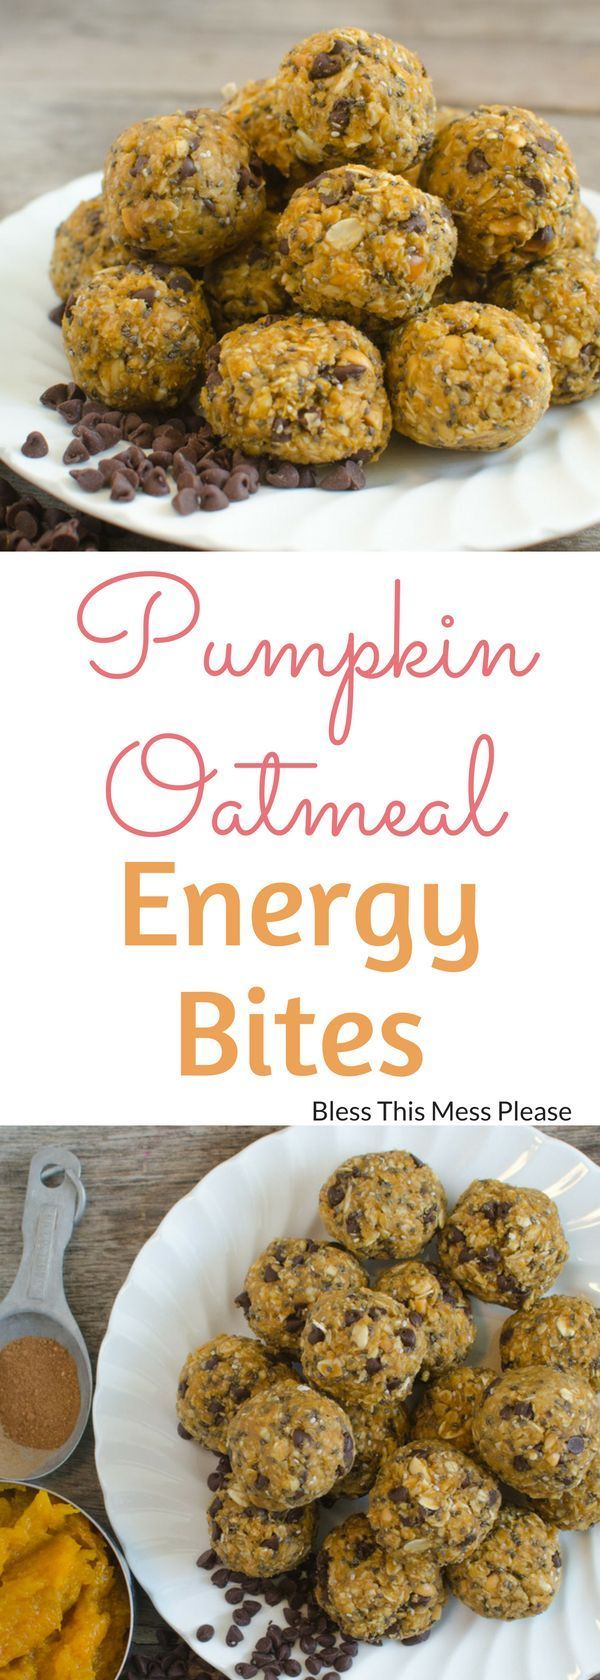 Healthy No Bake Pumpkin Oatmeal Energy Bites are going to be your go-to healthy snack or healthy dessert all fall long.